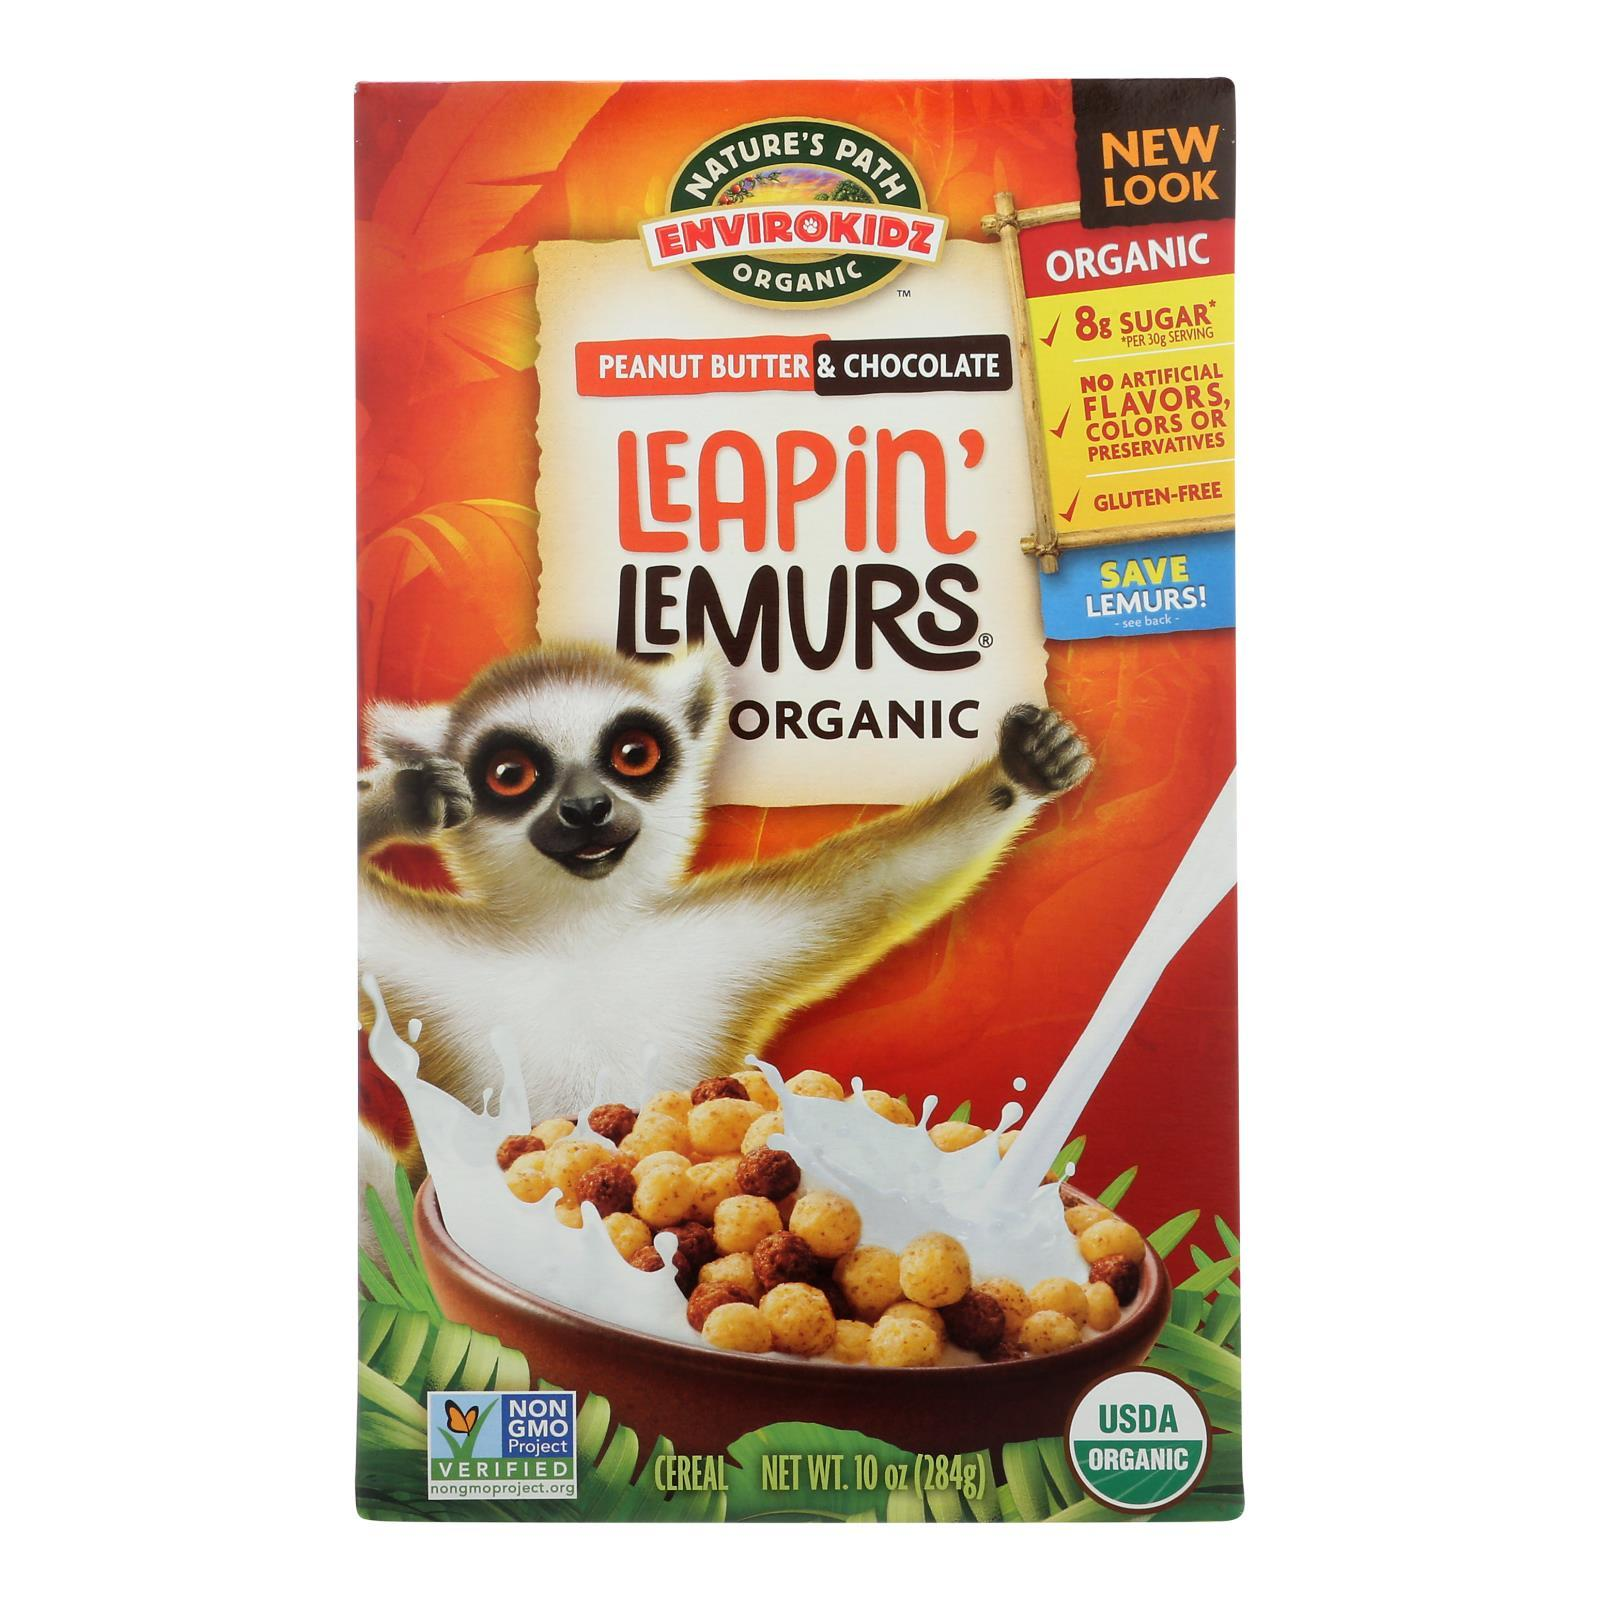 Envirokidz - Leapin' Lemurs Cereal - Peanut Butter And Chocolate - Case Of 12 - 10 Oz. - BeeGreen